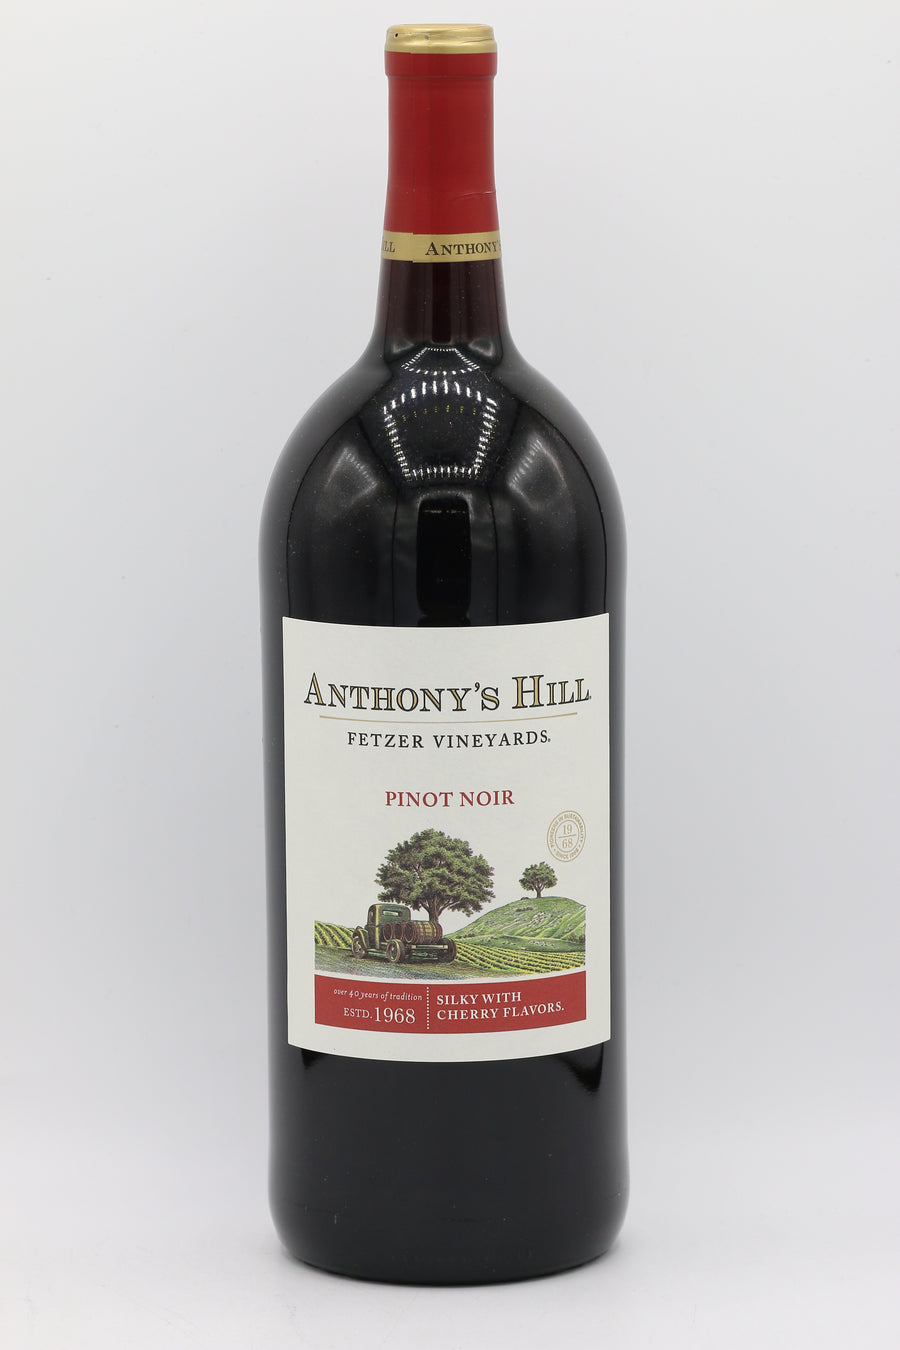 ANTHONYS HILL PINOT NOIR 1.5L